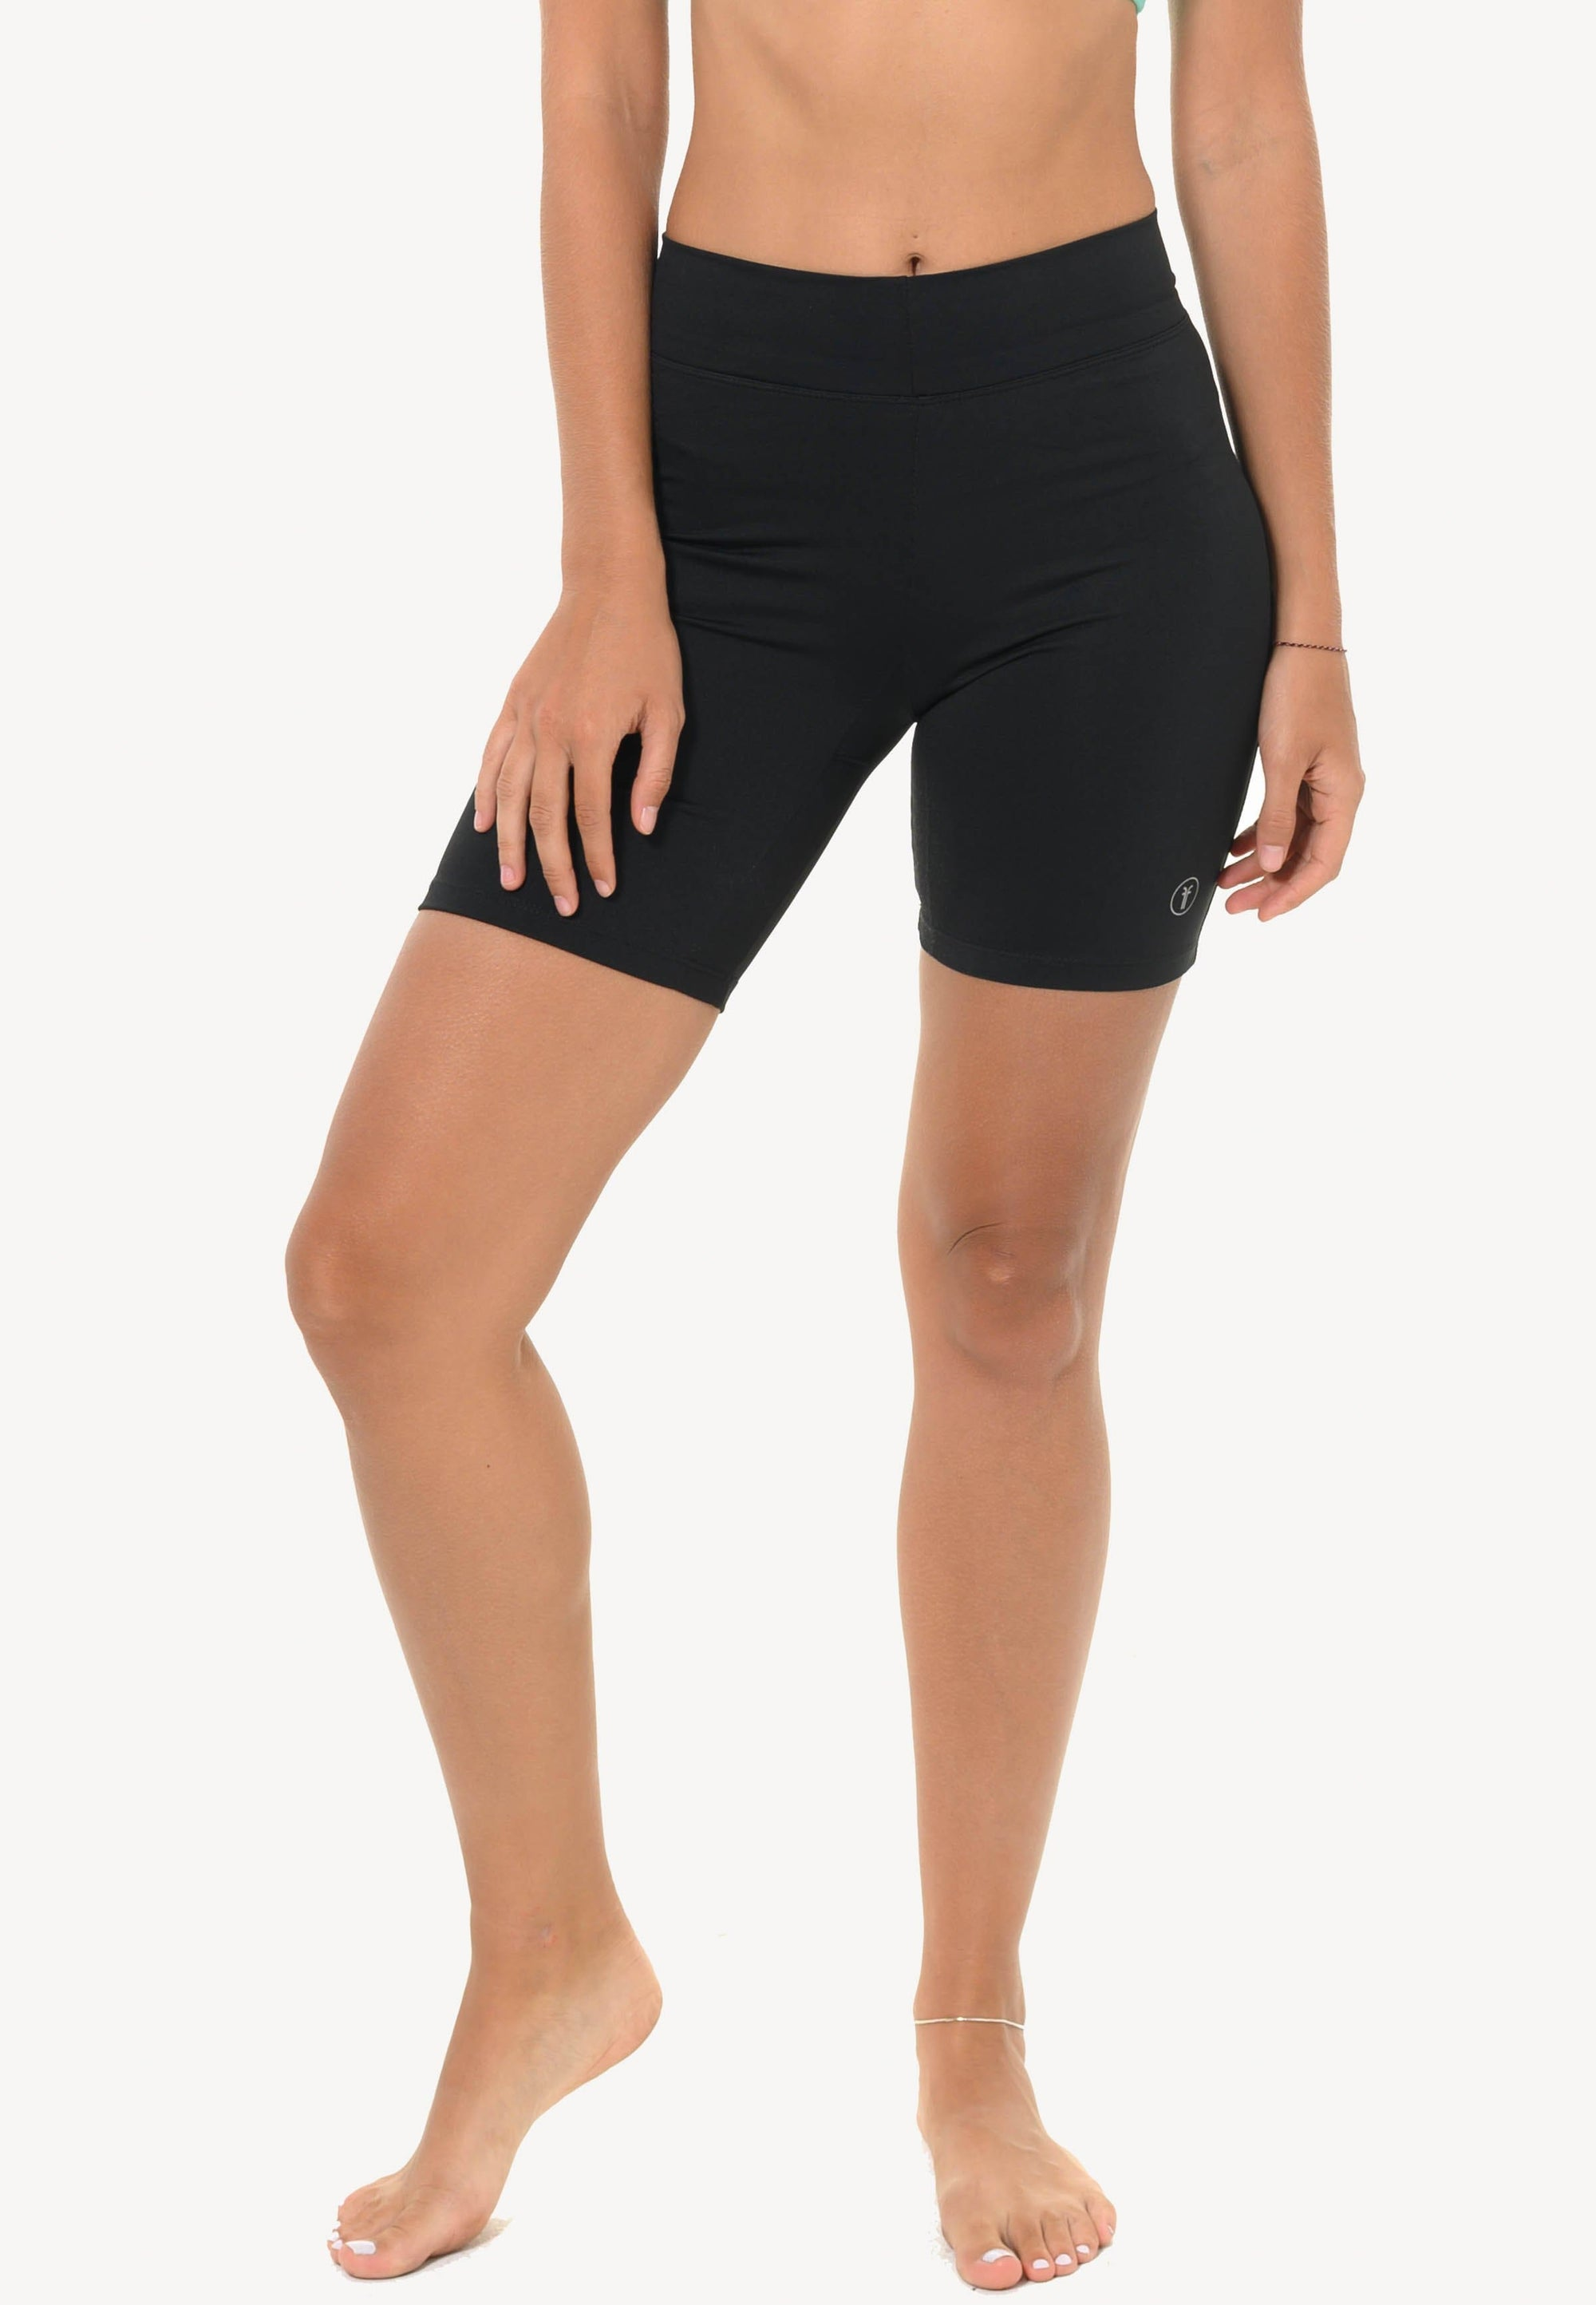 FUNFIT Classic Bike Shorts in Black (S - L)